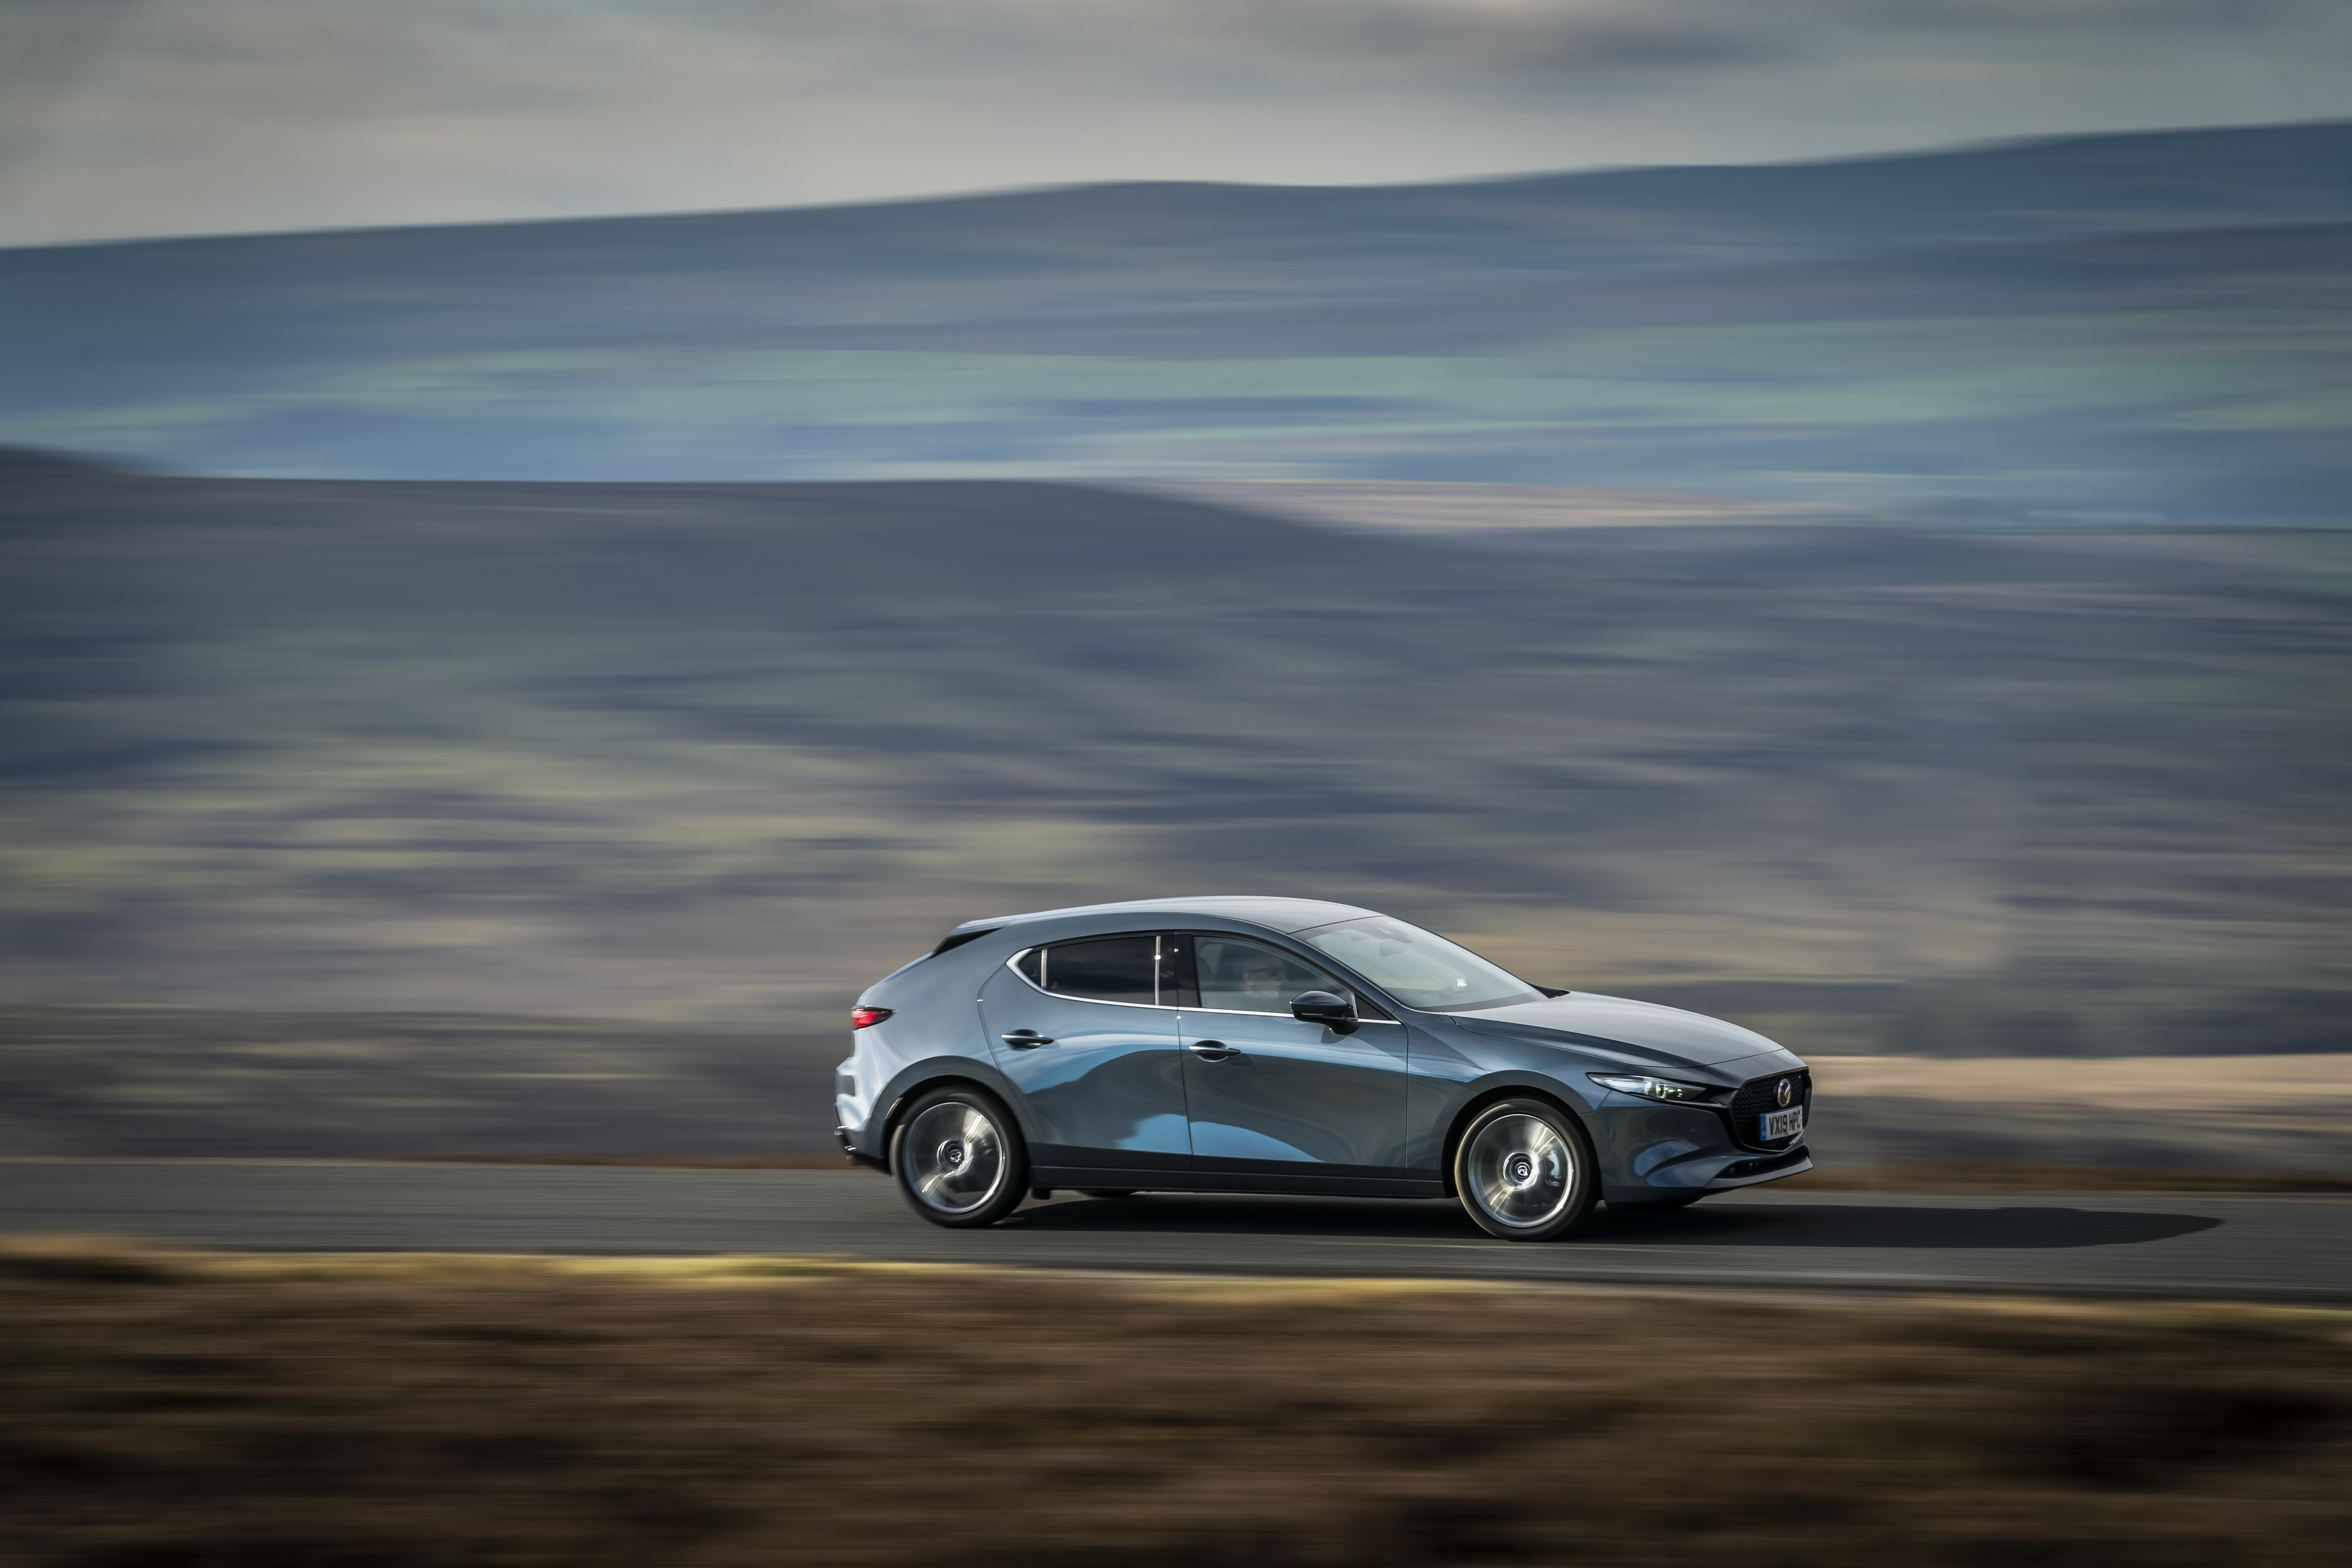 All-new_Mazda3_polymetal_grey_driving_side